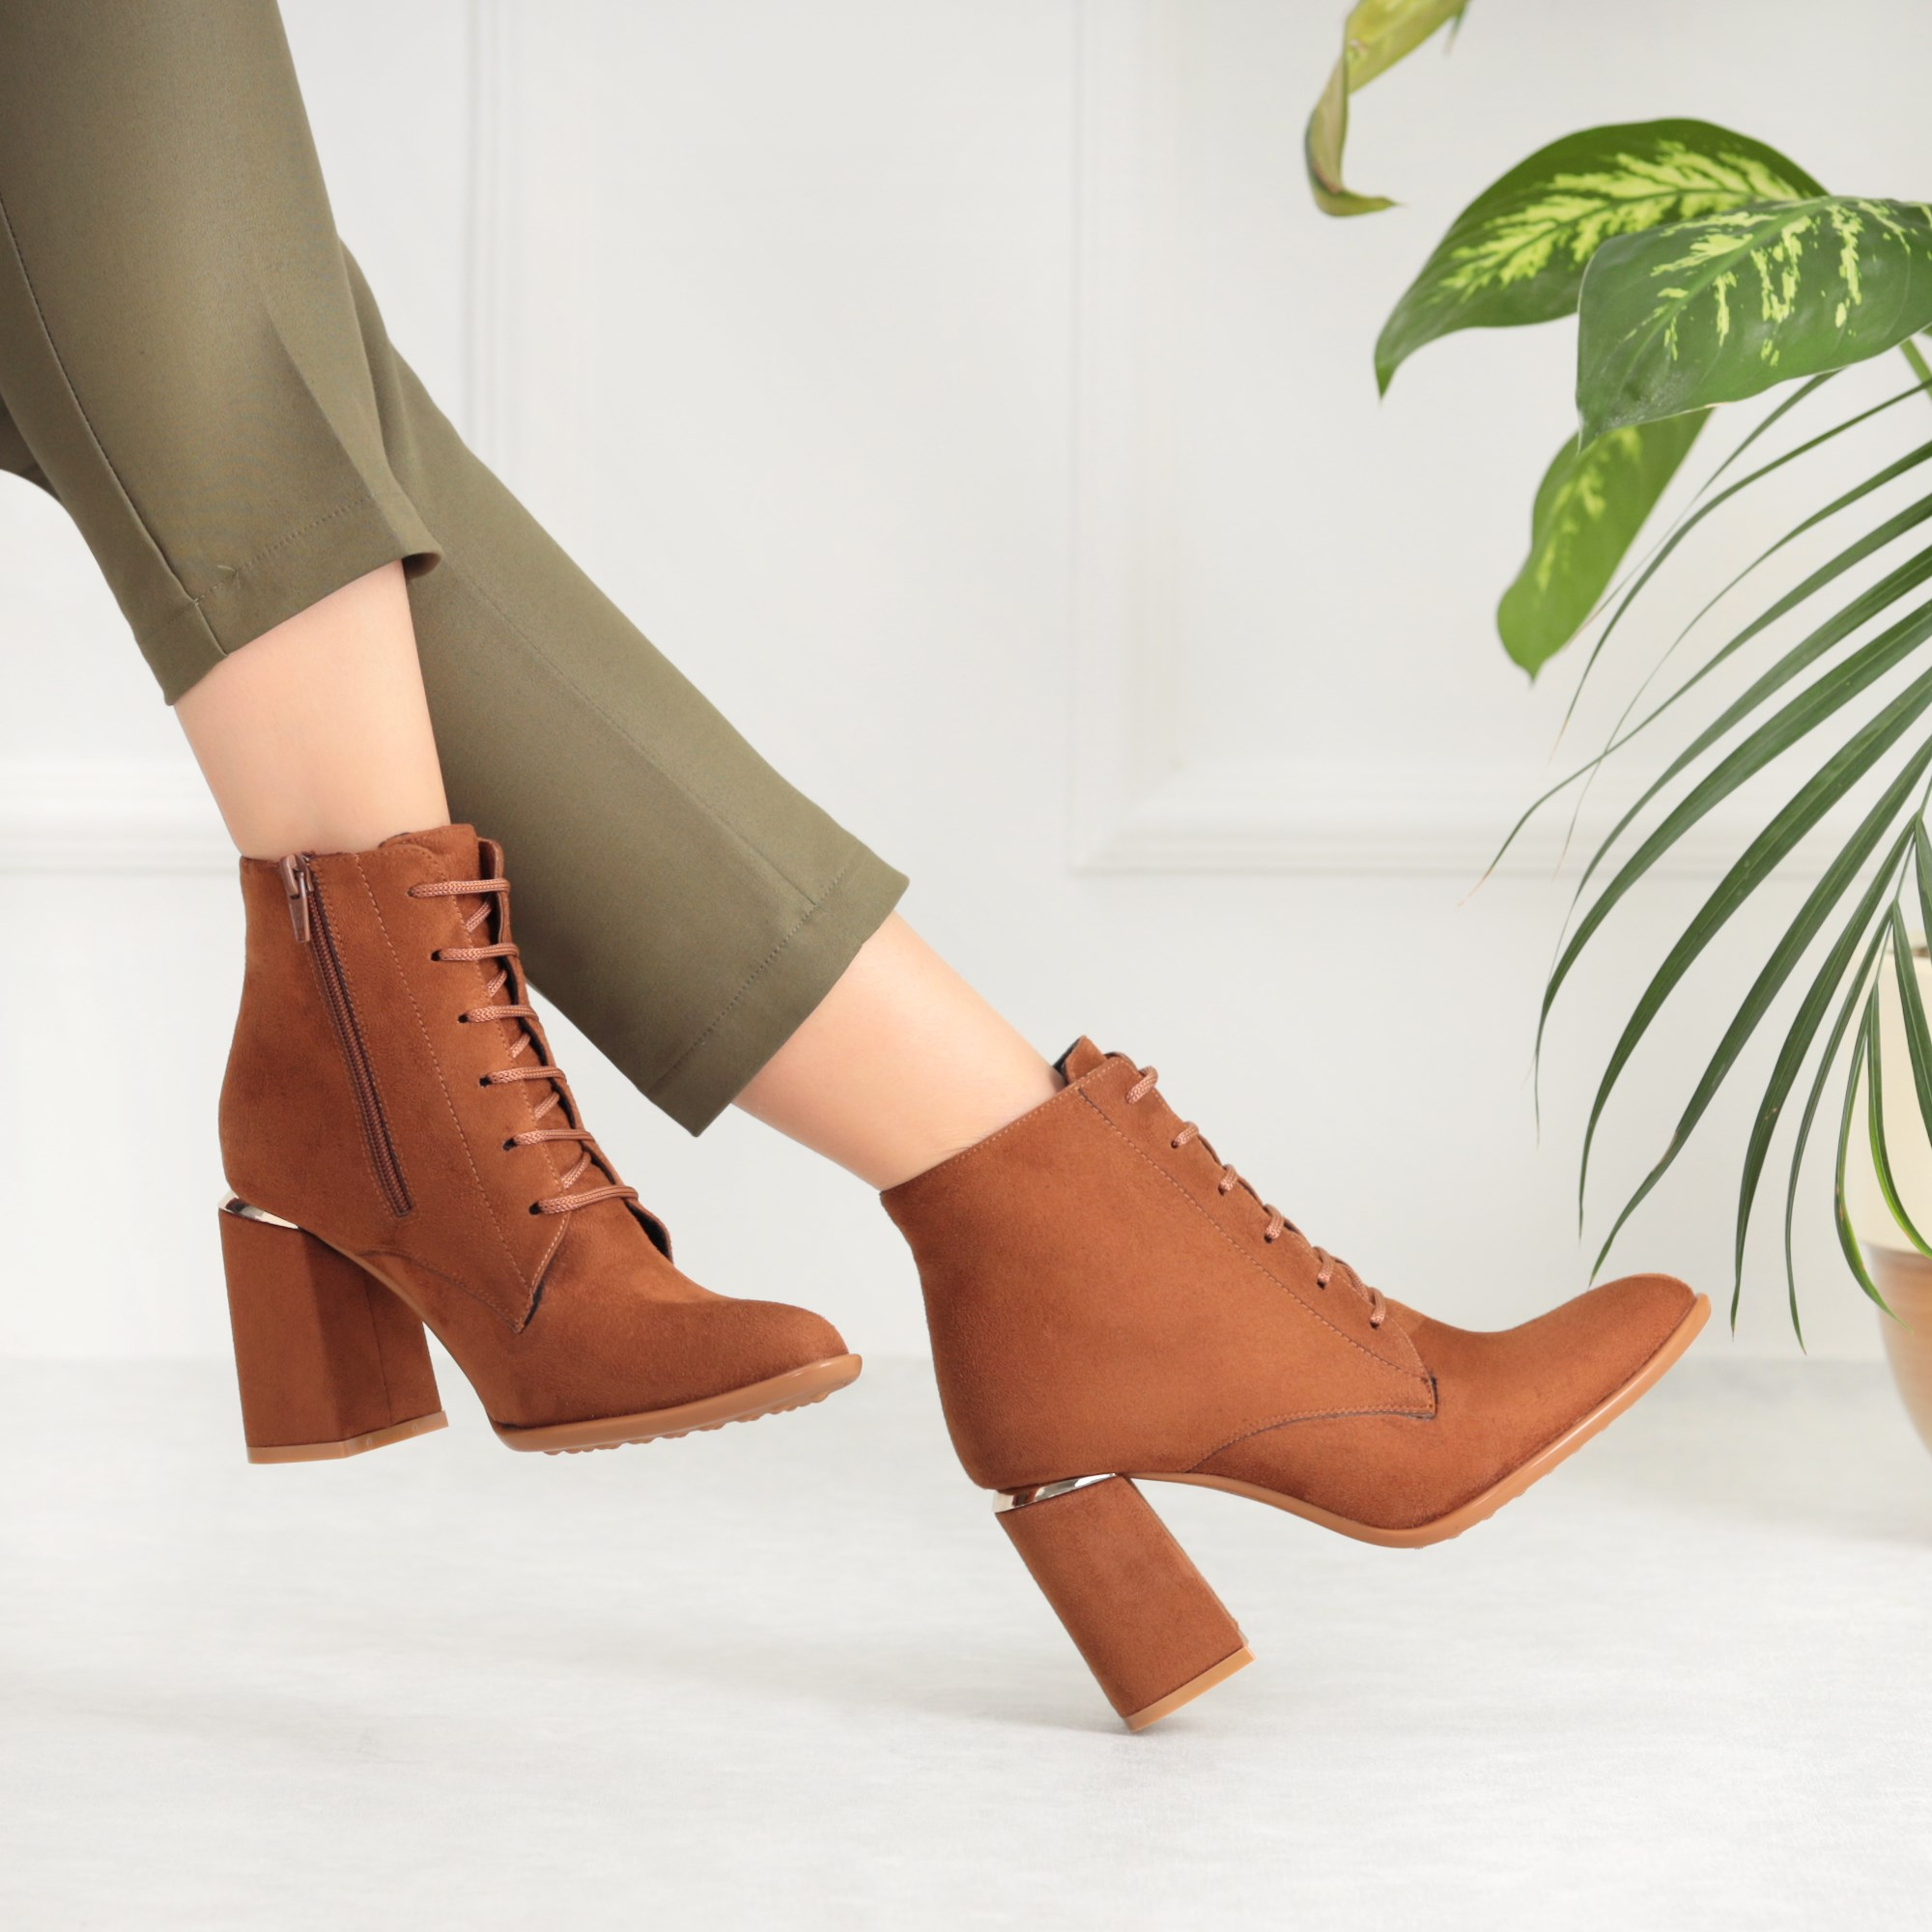 Hilden Suede Tan Color Thick Heeled Boots